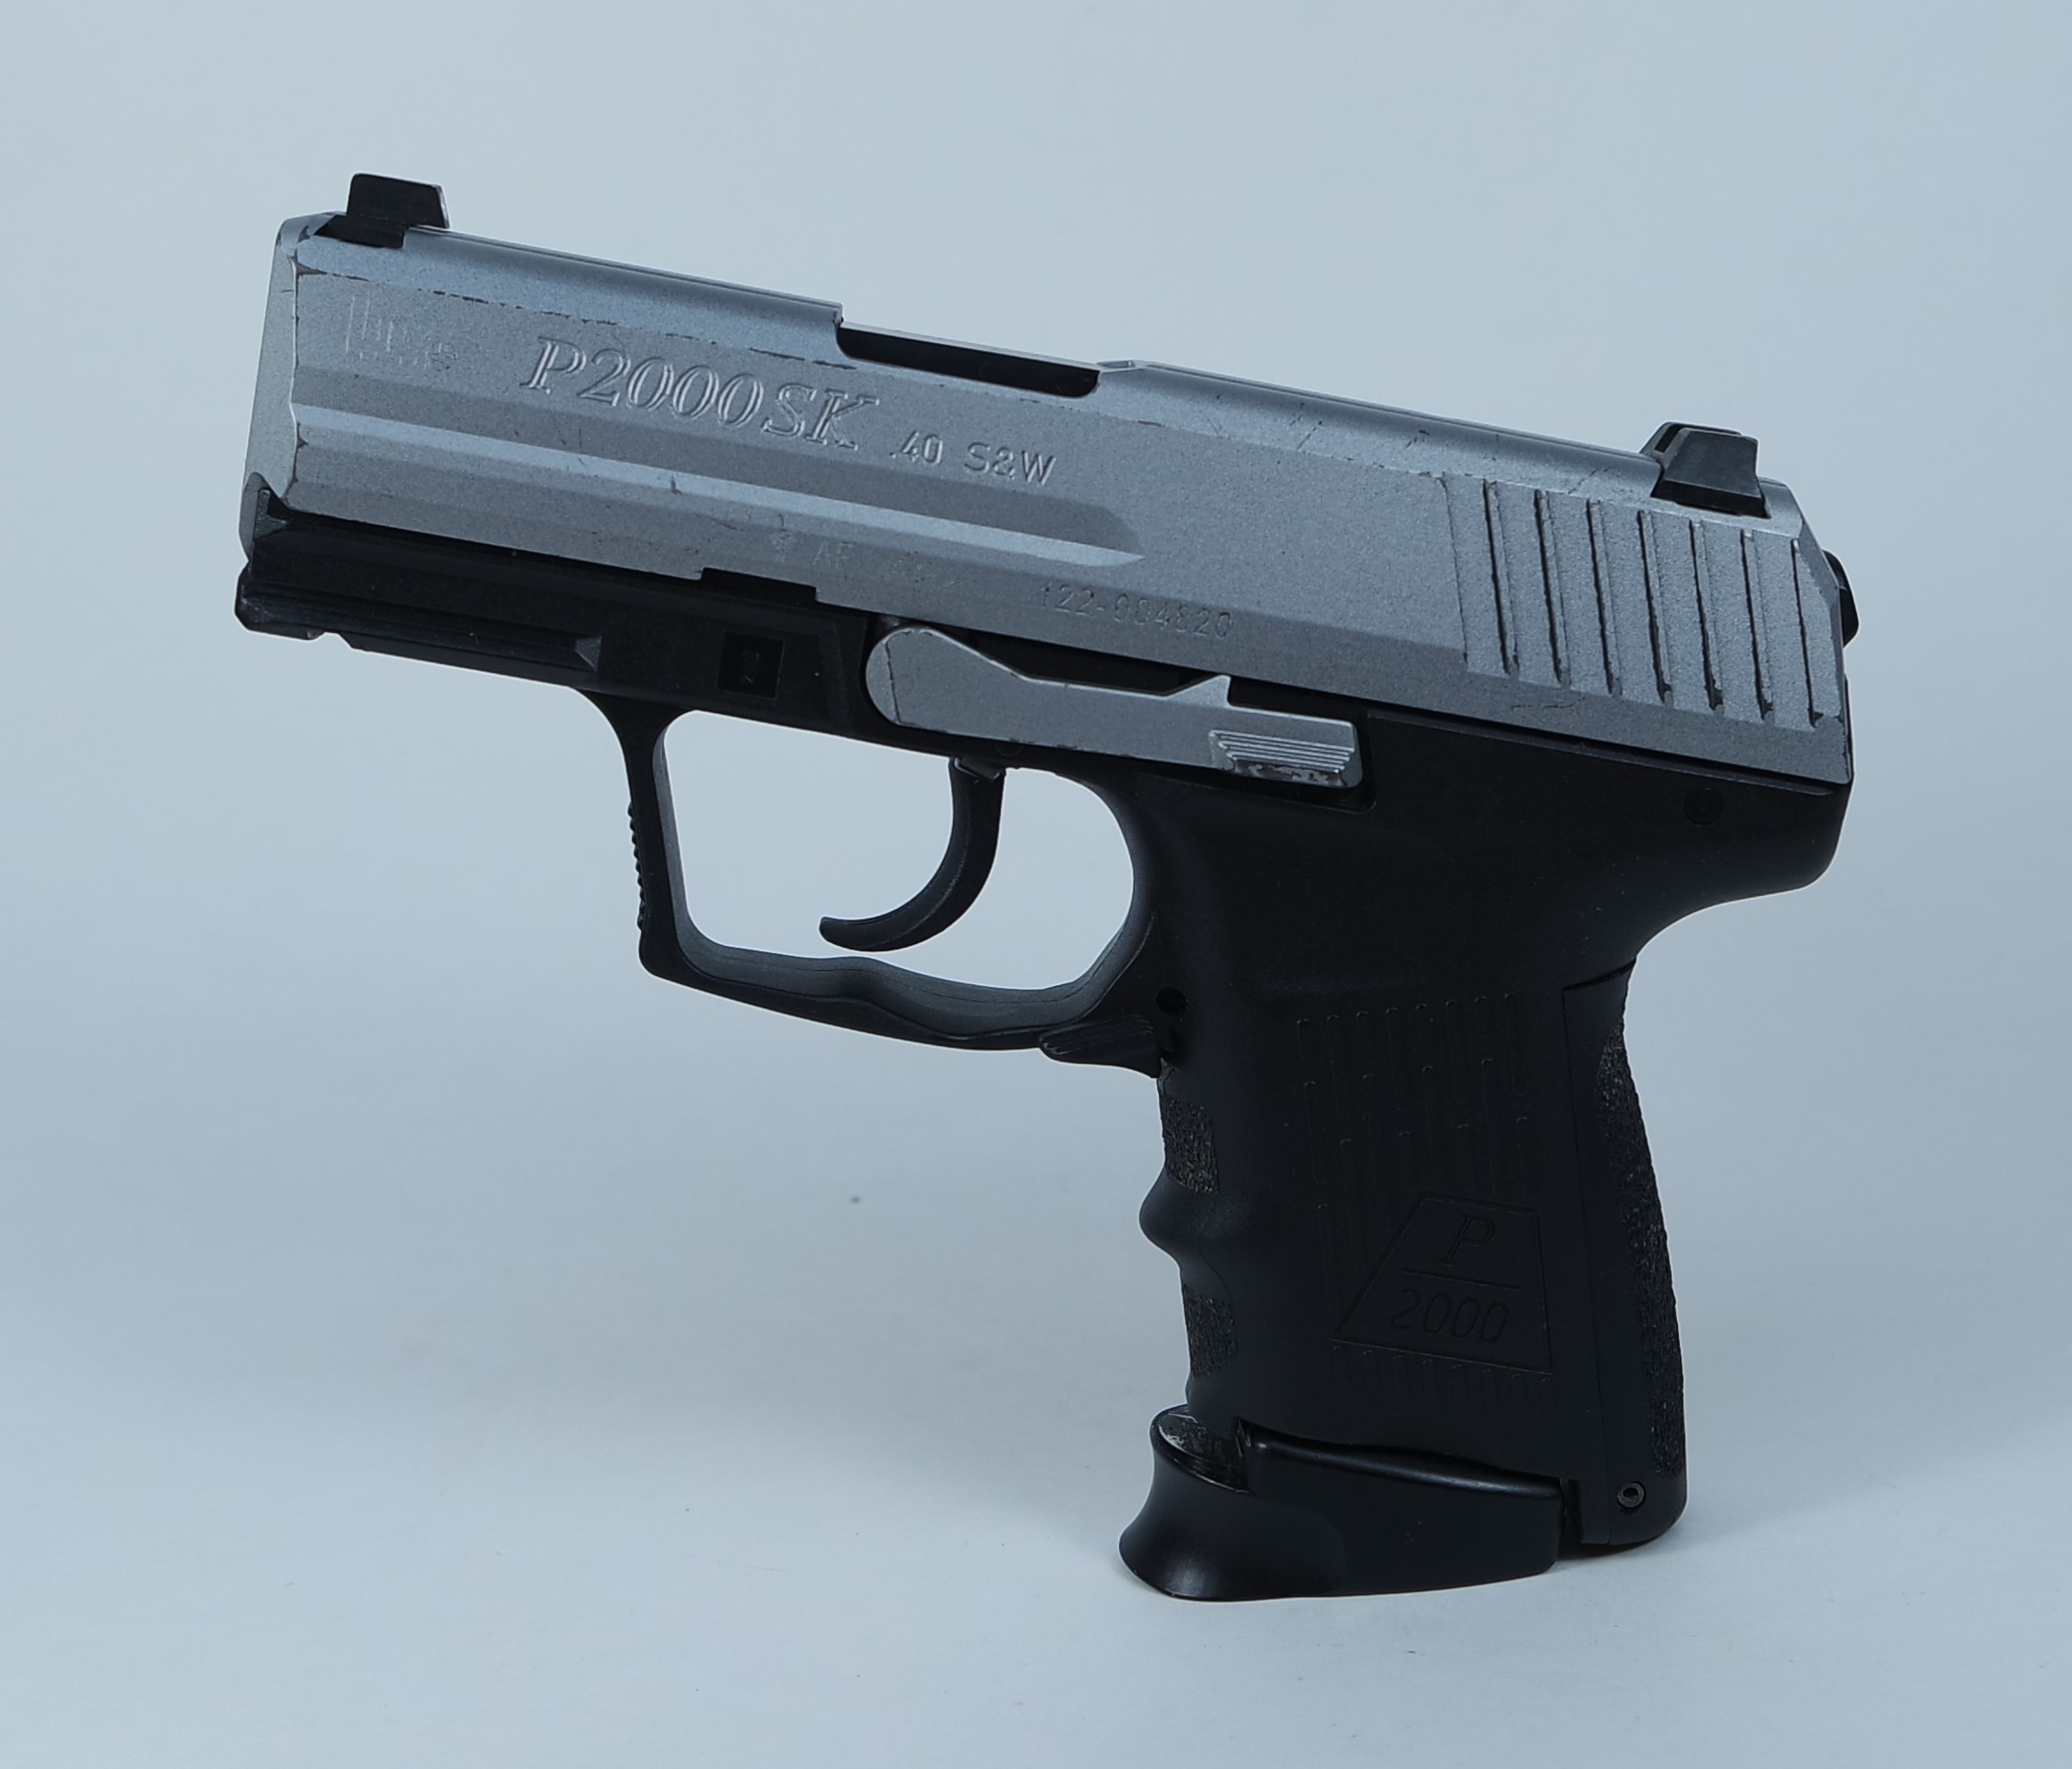 Heckler & Koch P2000SK Stainless Two Tone .40 S&W Handgun Pre-owned